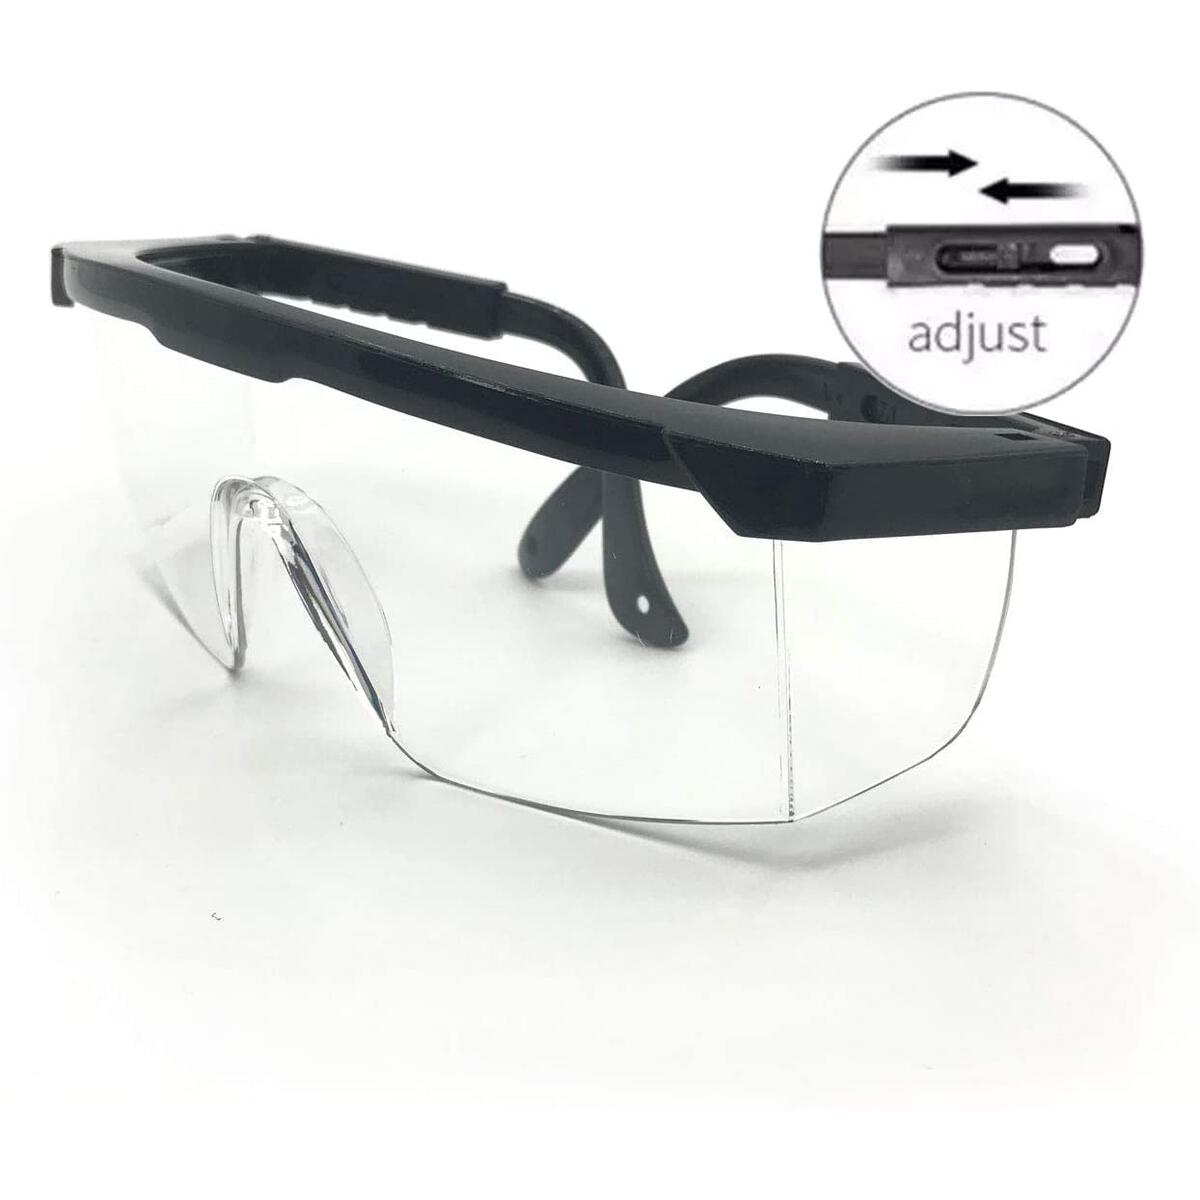 Powerlap Pro FMA105V2 - Safety Glasses with Side Shields Anti Fog and Anti Scratch, with Impact Resistant Eye Protection | Unisex Adjustable legs Frame | Clear Glasses Protective Eyewear Goggles